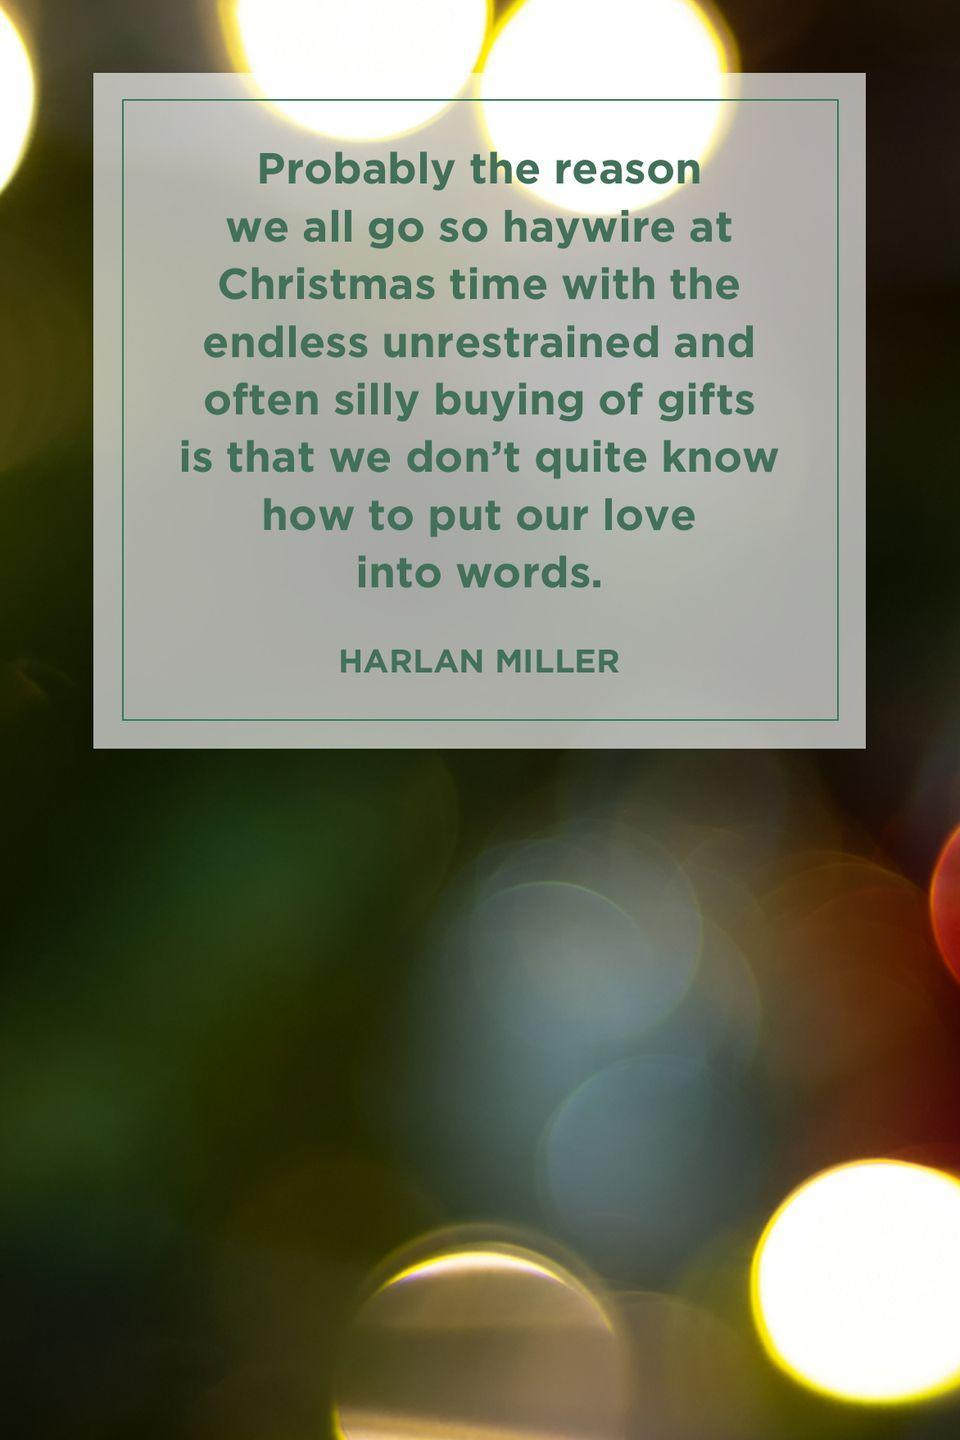 """<p>""""Probably the reason we all go so haywire at Christmas time with the endless unrestrained and often silly buying of gifts is that we don't quite know how to put our love into words.""""</p>"""